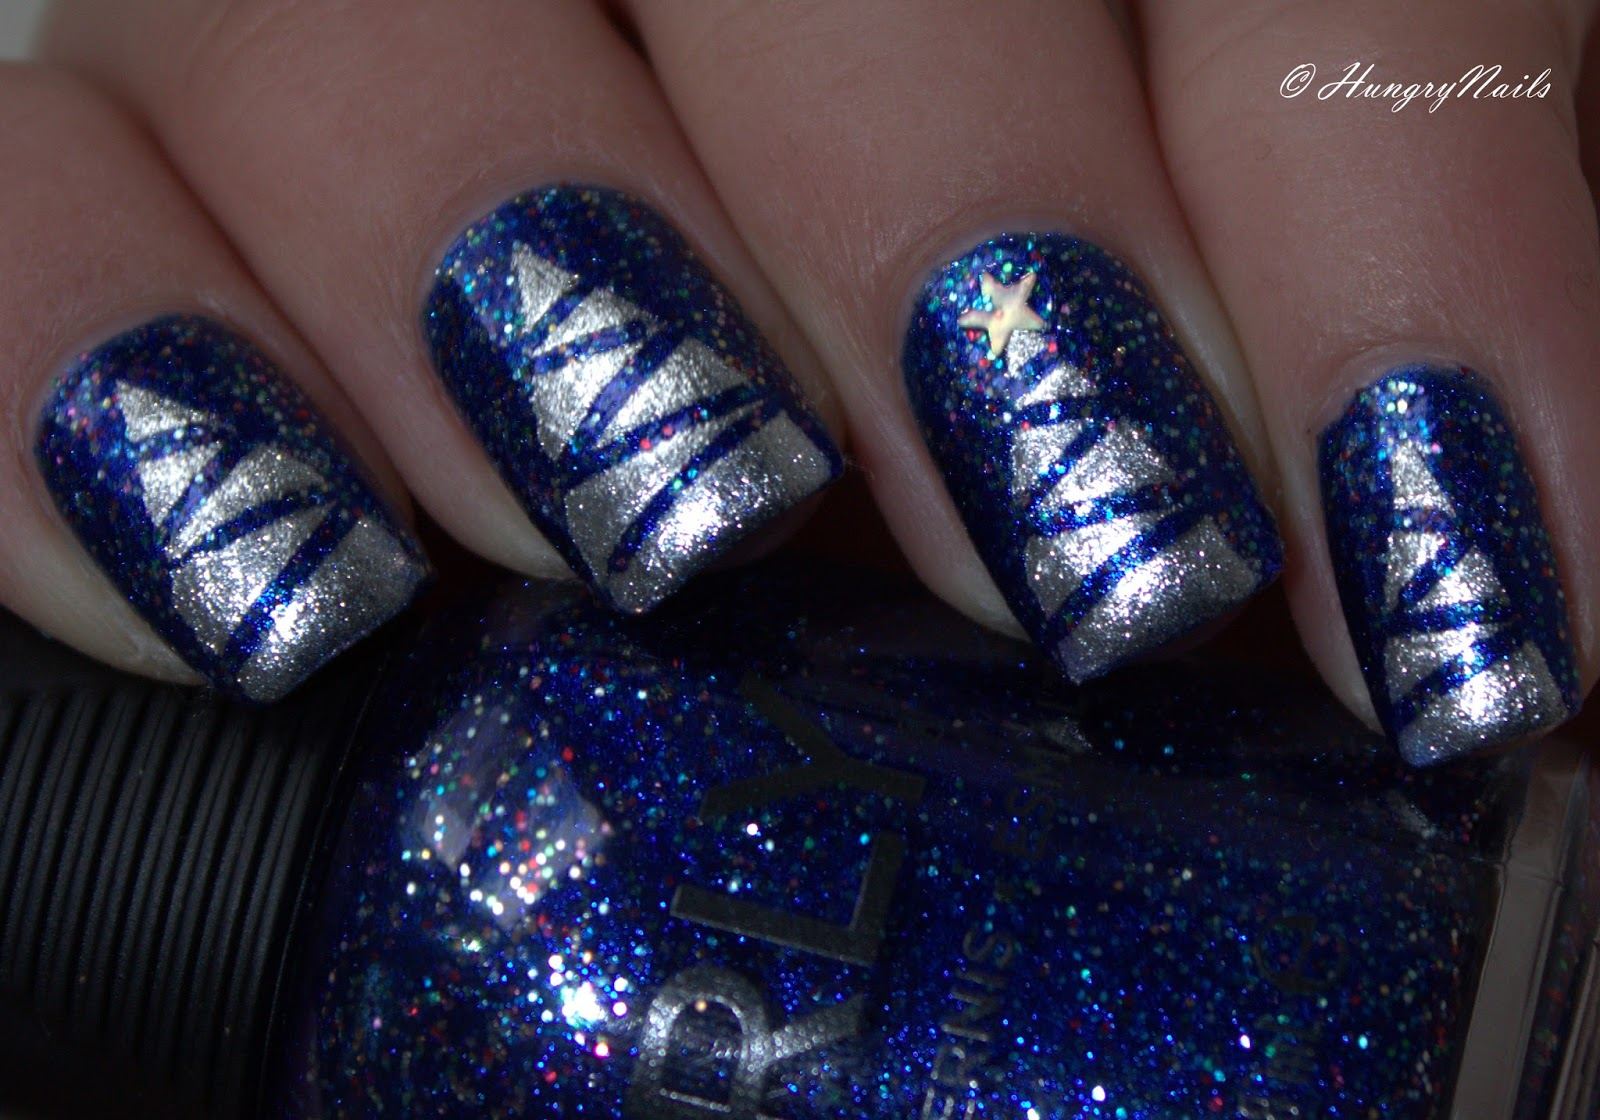 http://hungrynails.blogspot.de/2014/12/blue-friday-glitzernde-weihnachtsnaegel.html